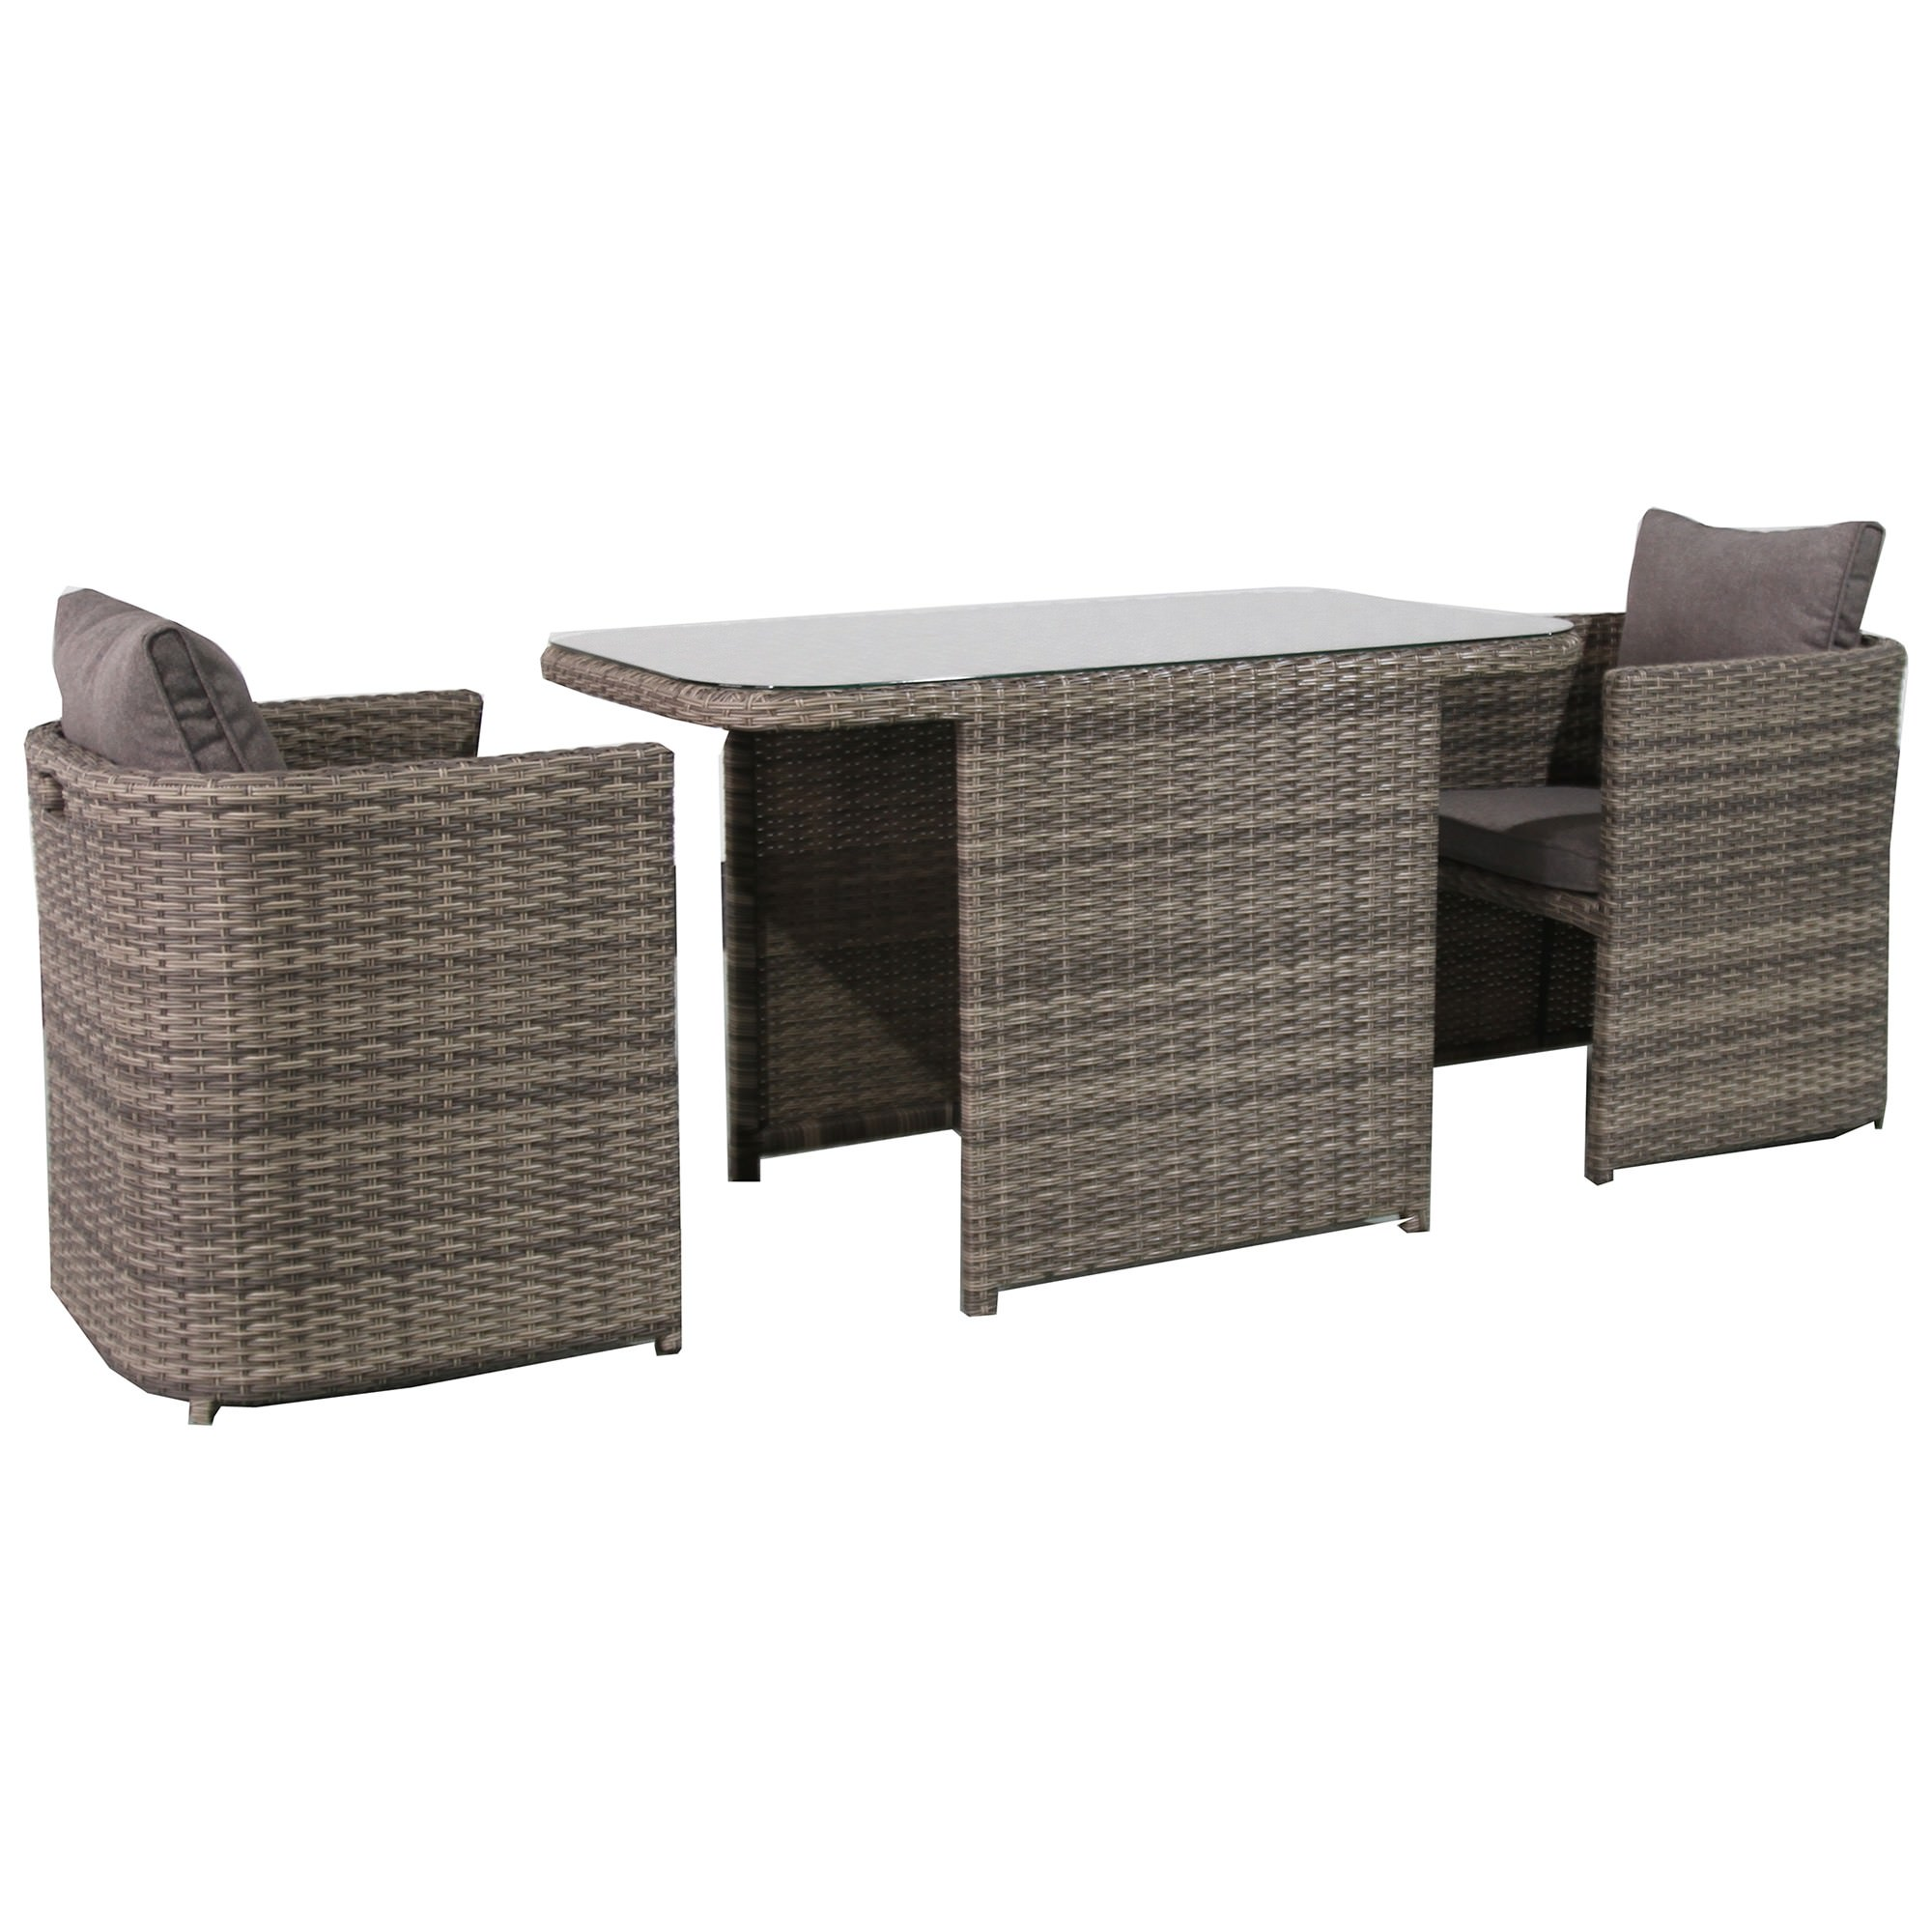 Ingrid 3 Piece Wicker Compact Balcony Dining Table Set, 120cm